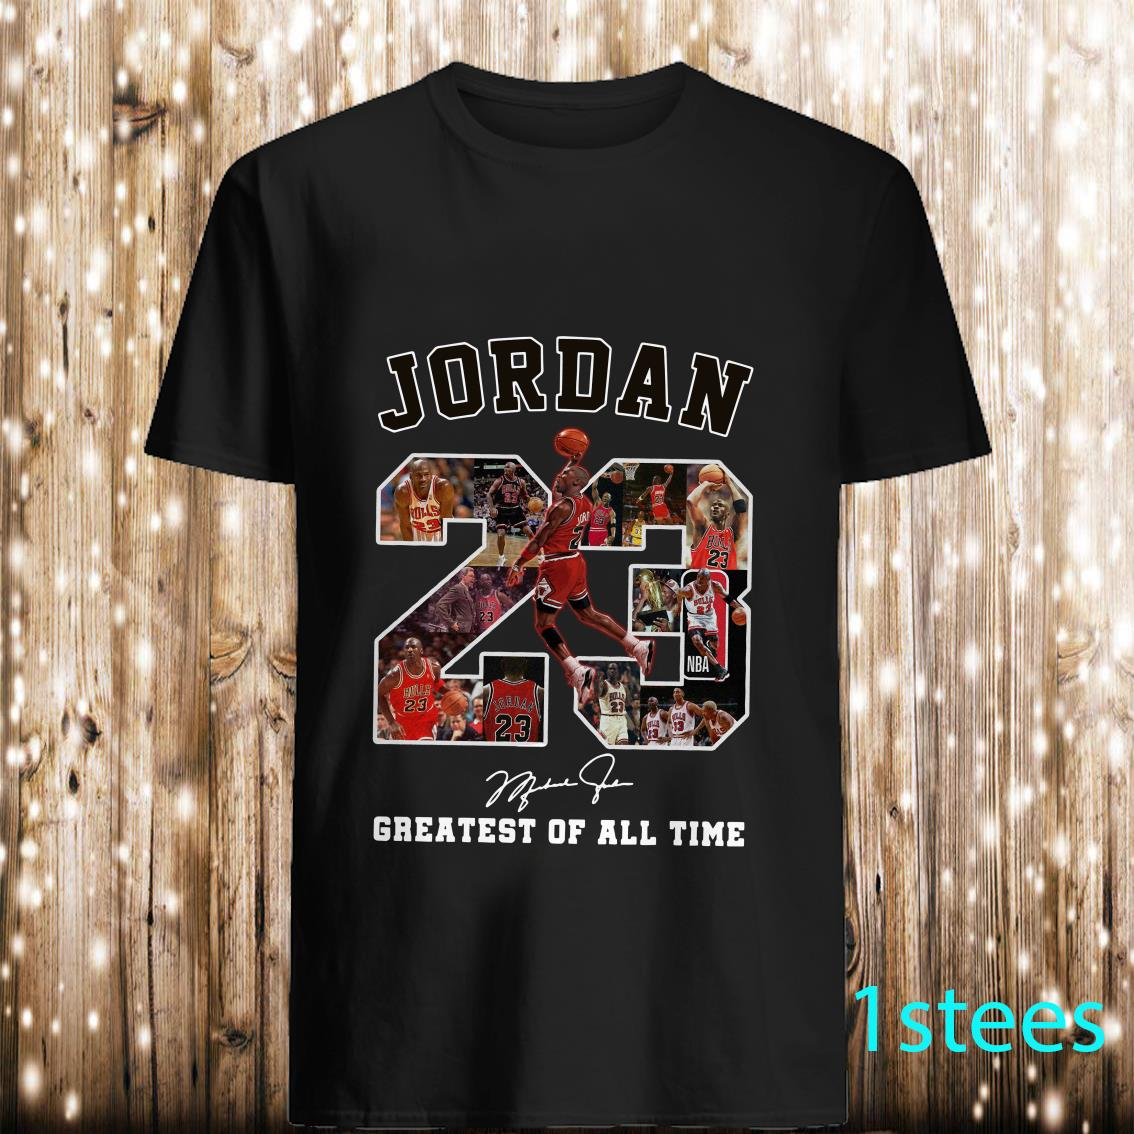 Jordan 23 Greatest Of All Time Signed Shirt